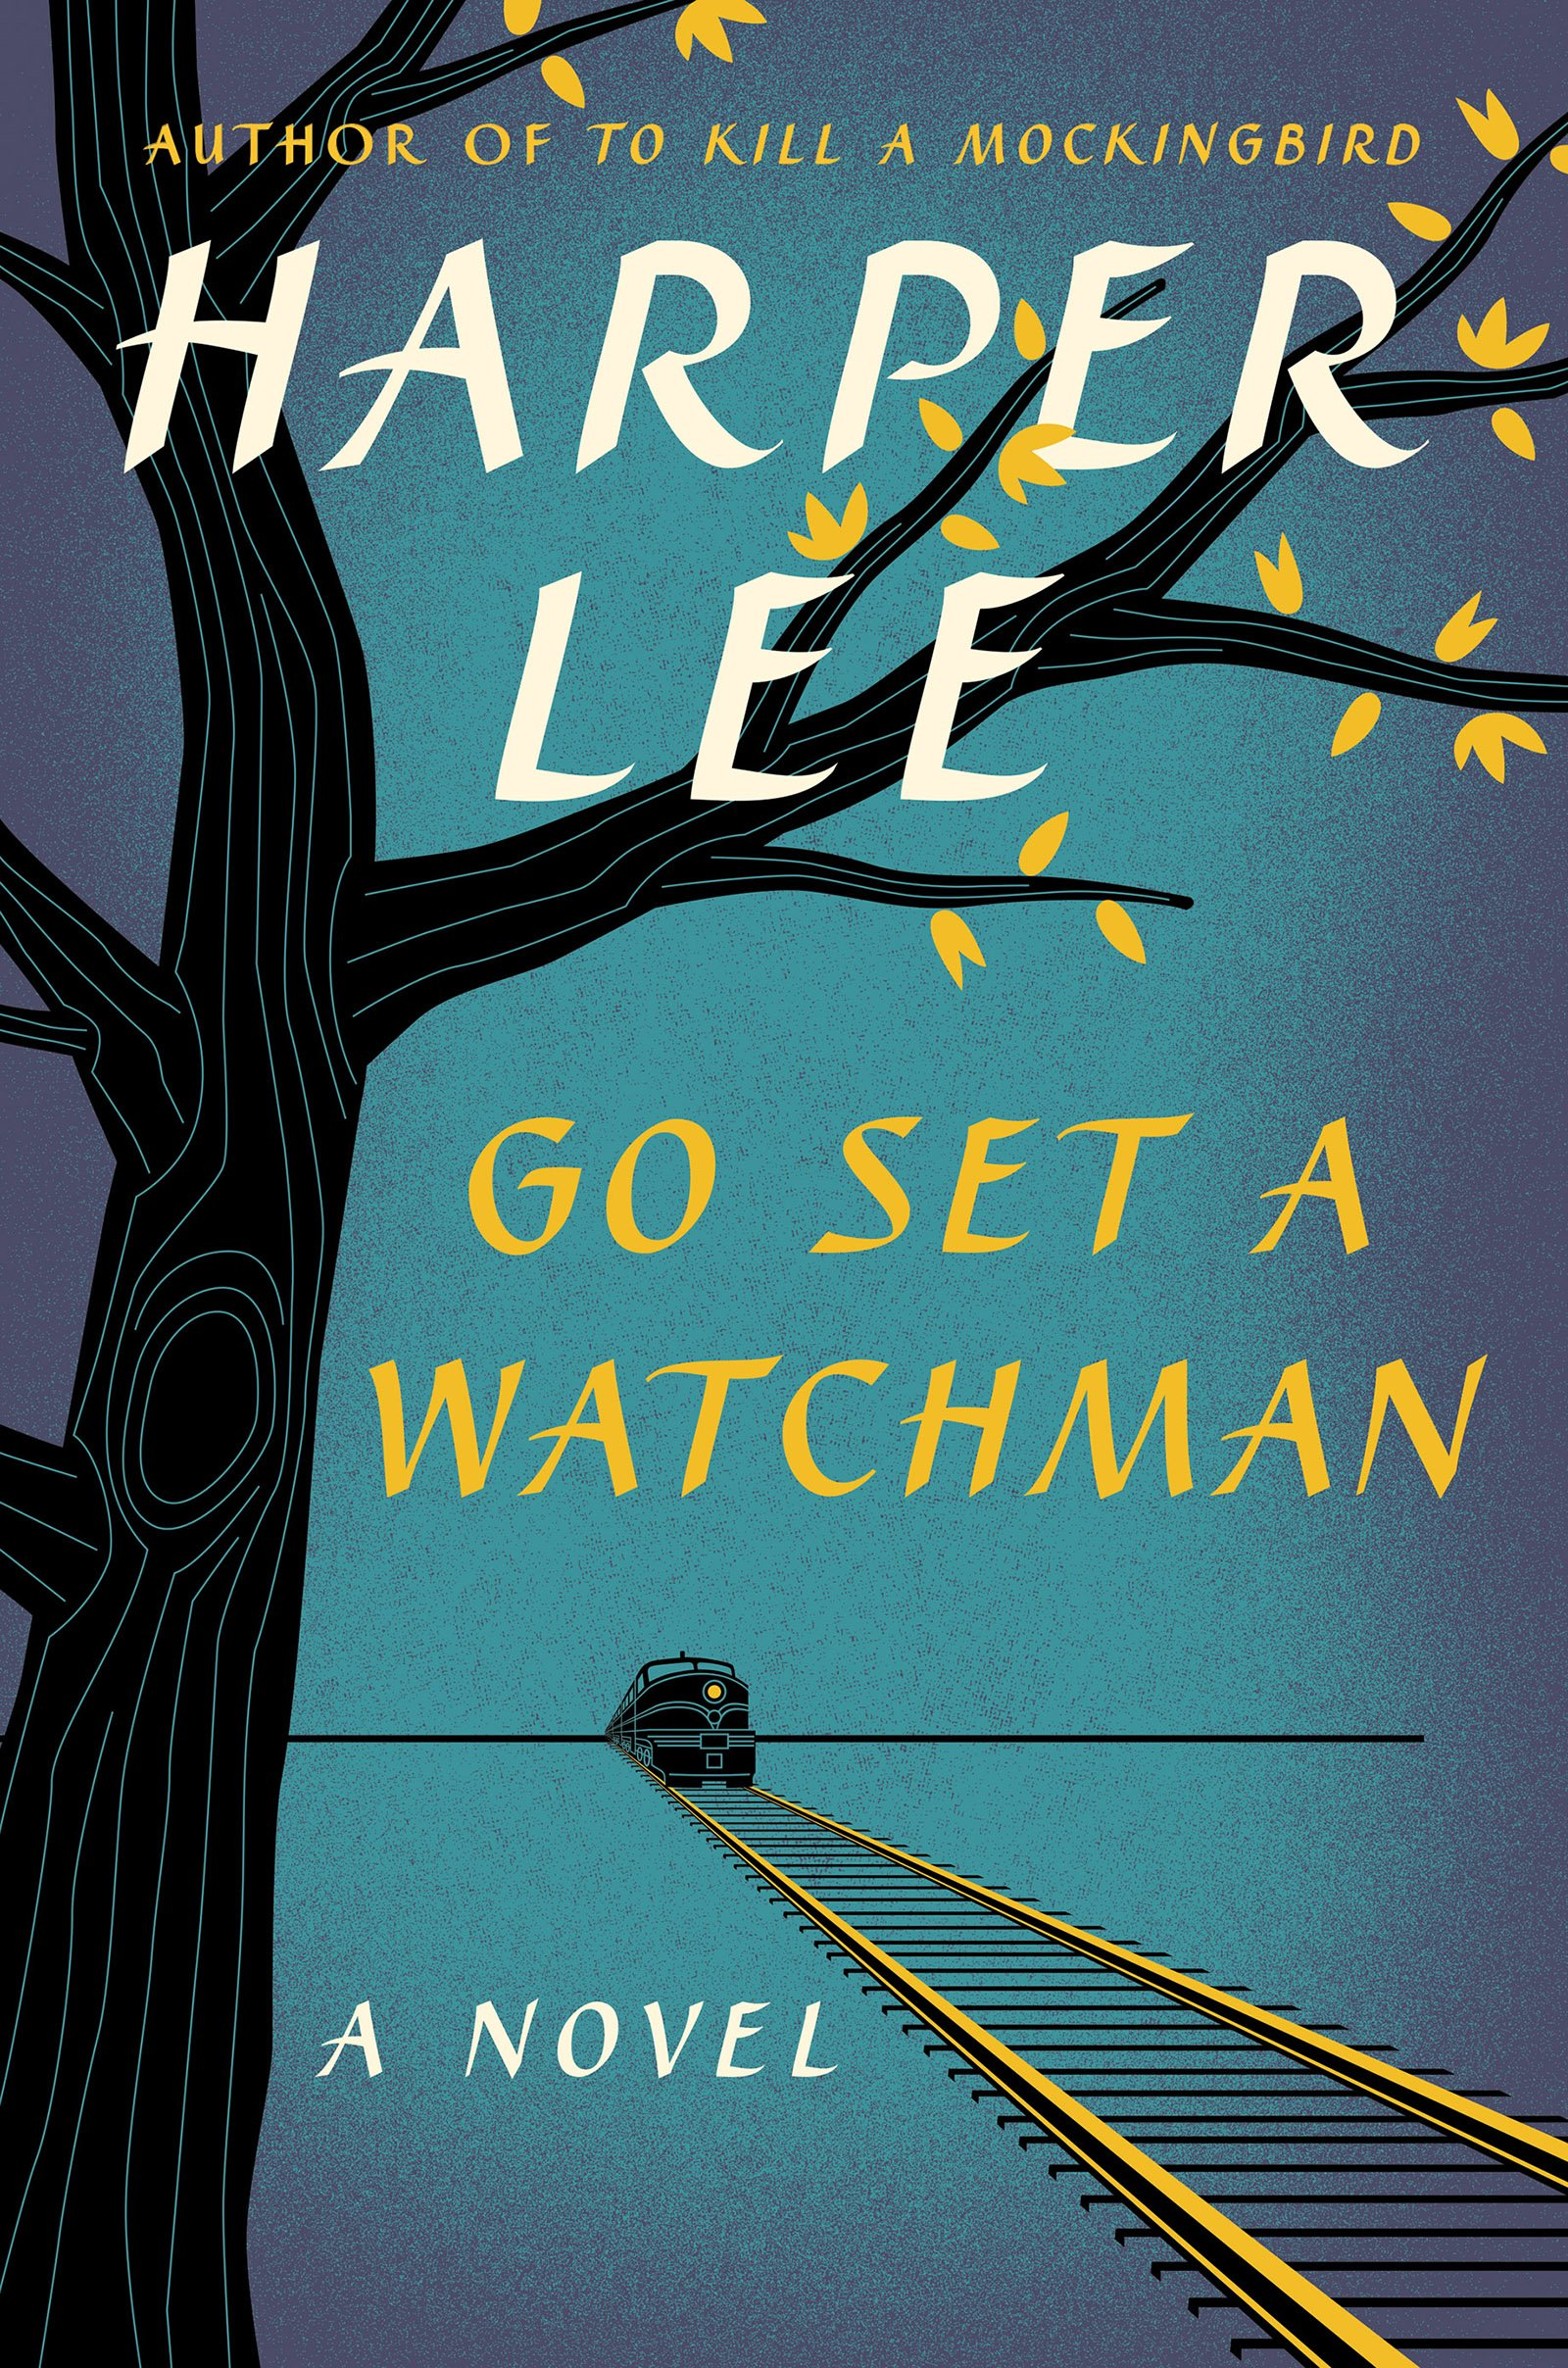 READ AN EXTRACT: Harper Lee - Go Set a Watchman